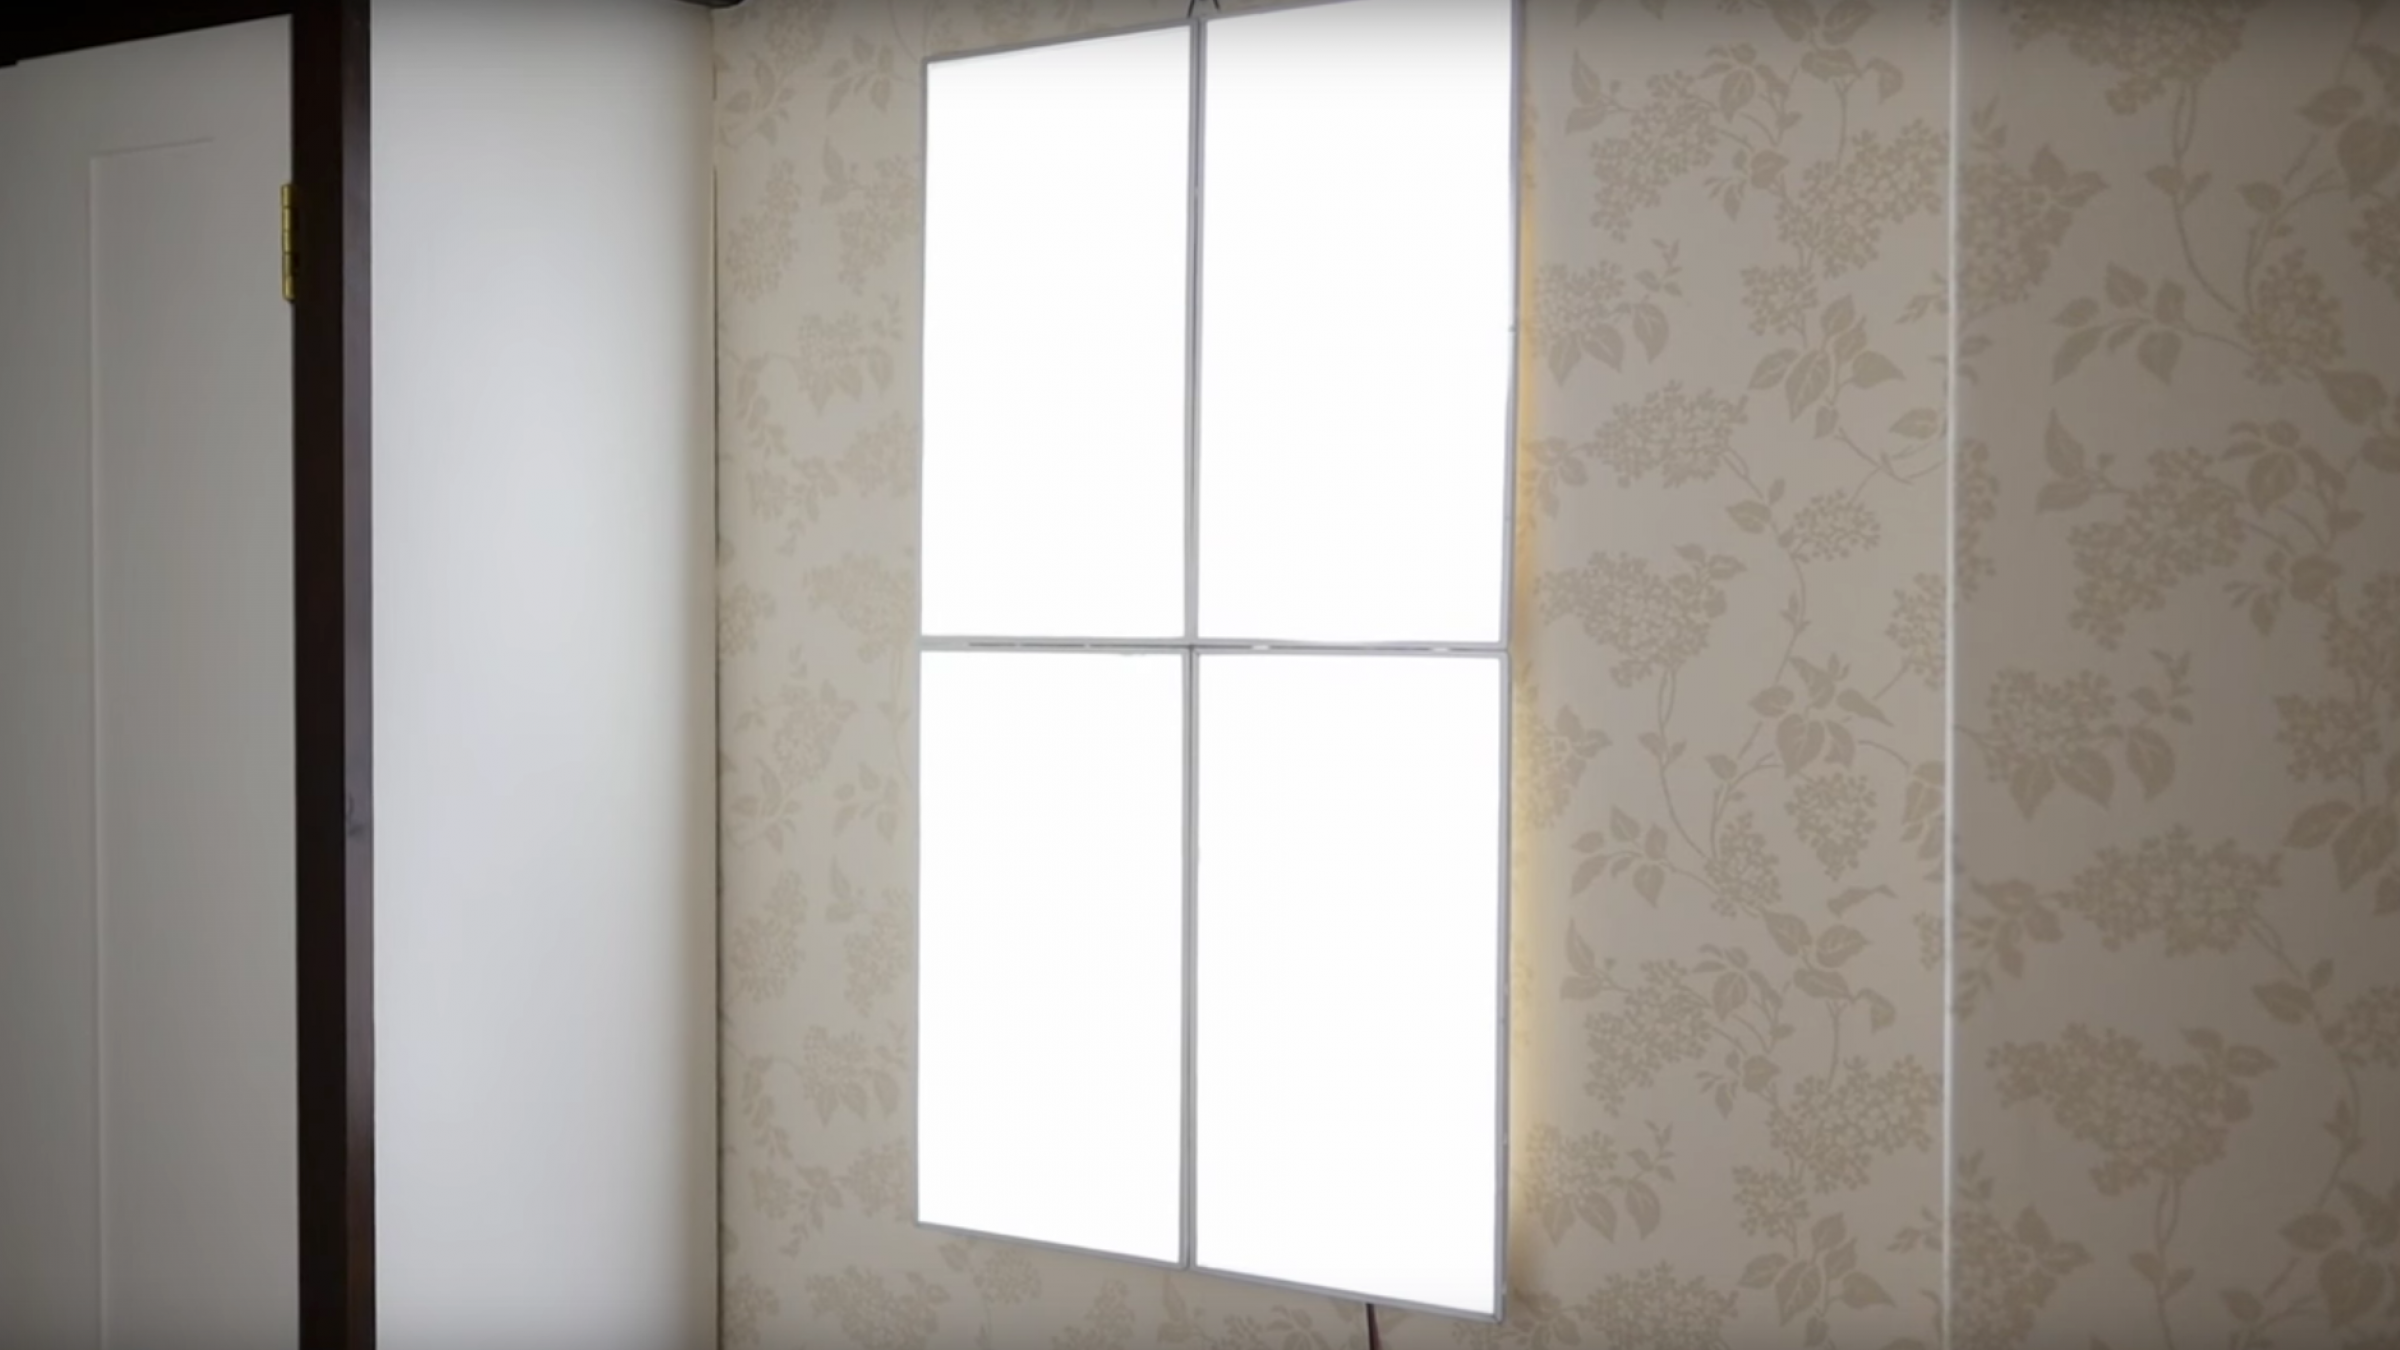 Turn 4 old laptop screens into a fake window light panel with this in depth tutorial